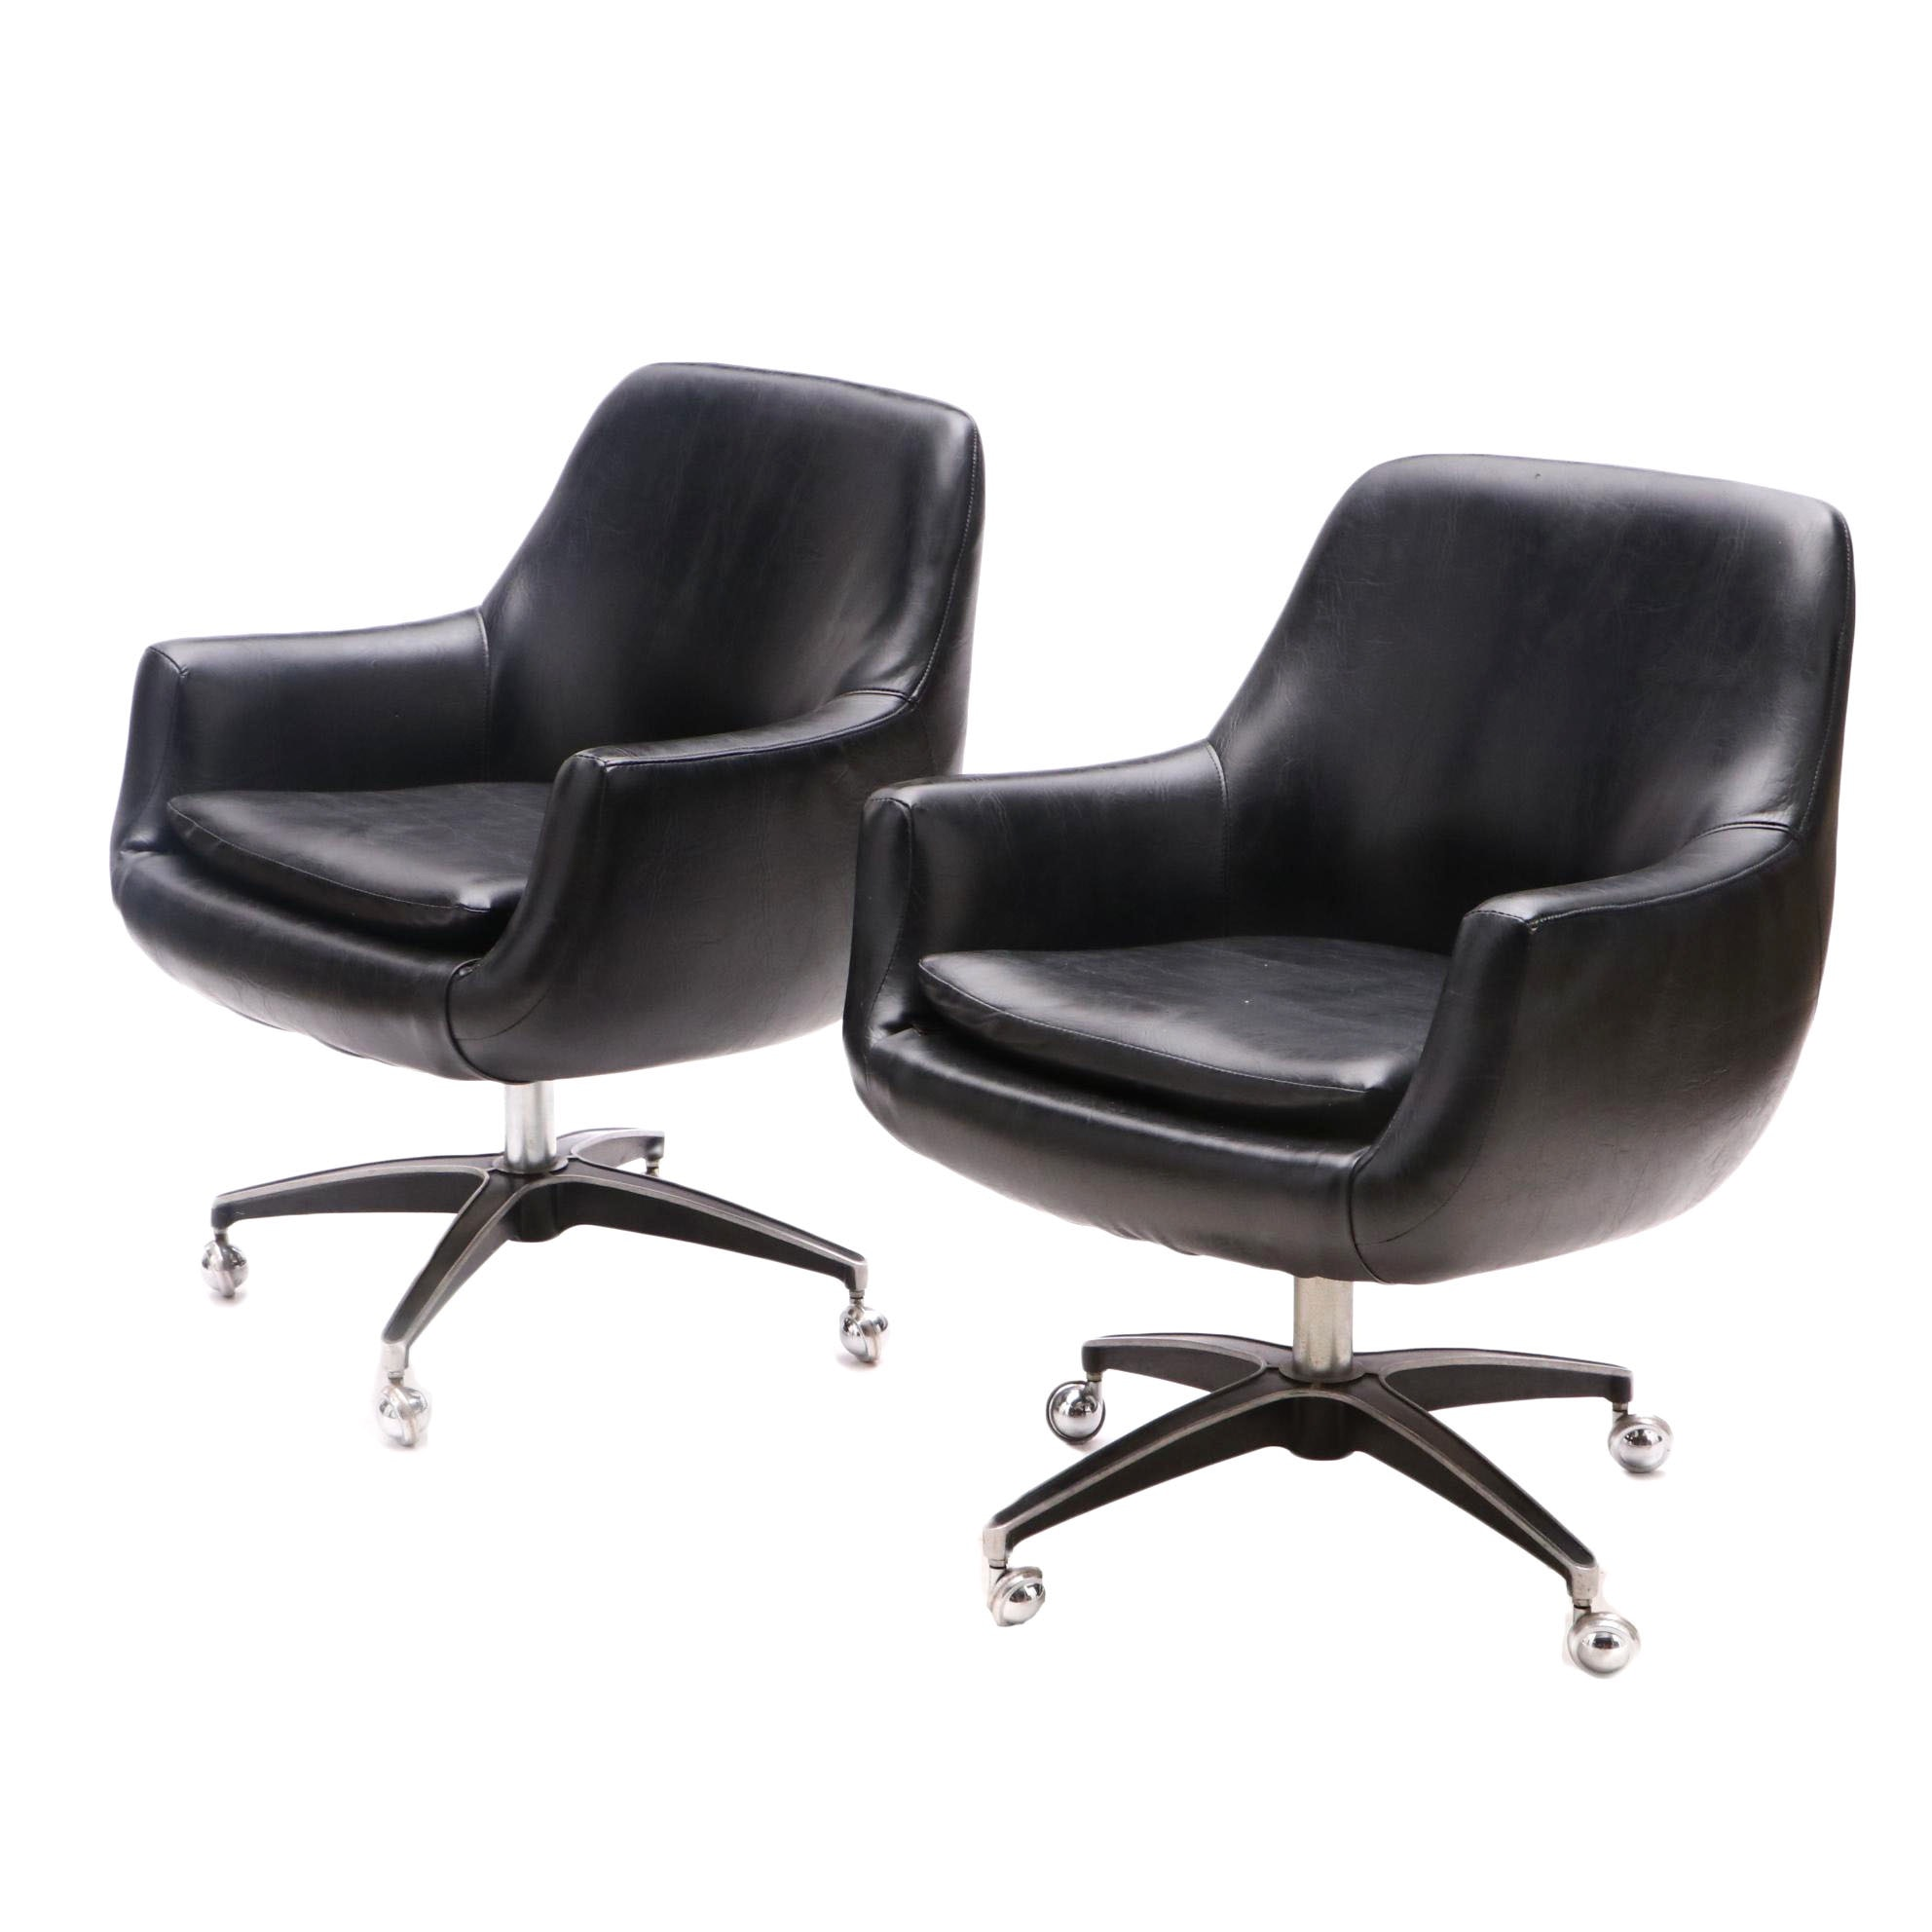 Daystrom Furniture Vintage Black Swivel Chairs